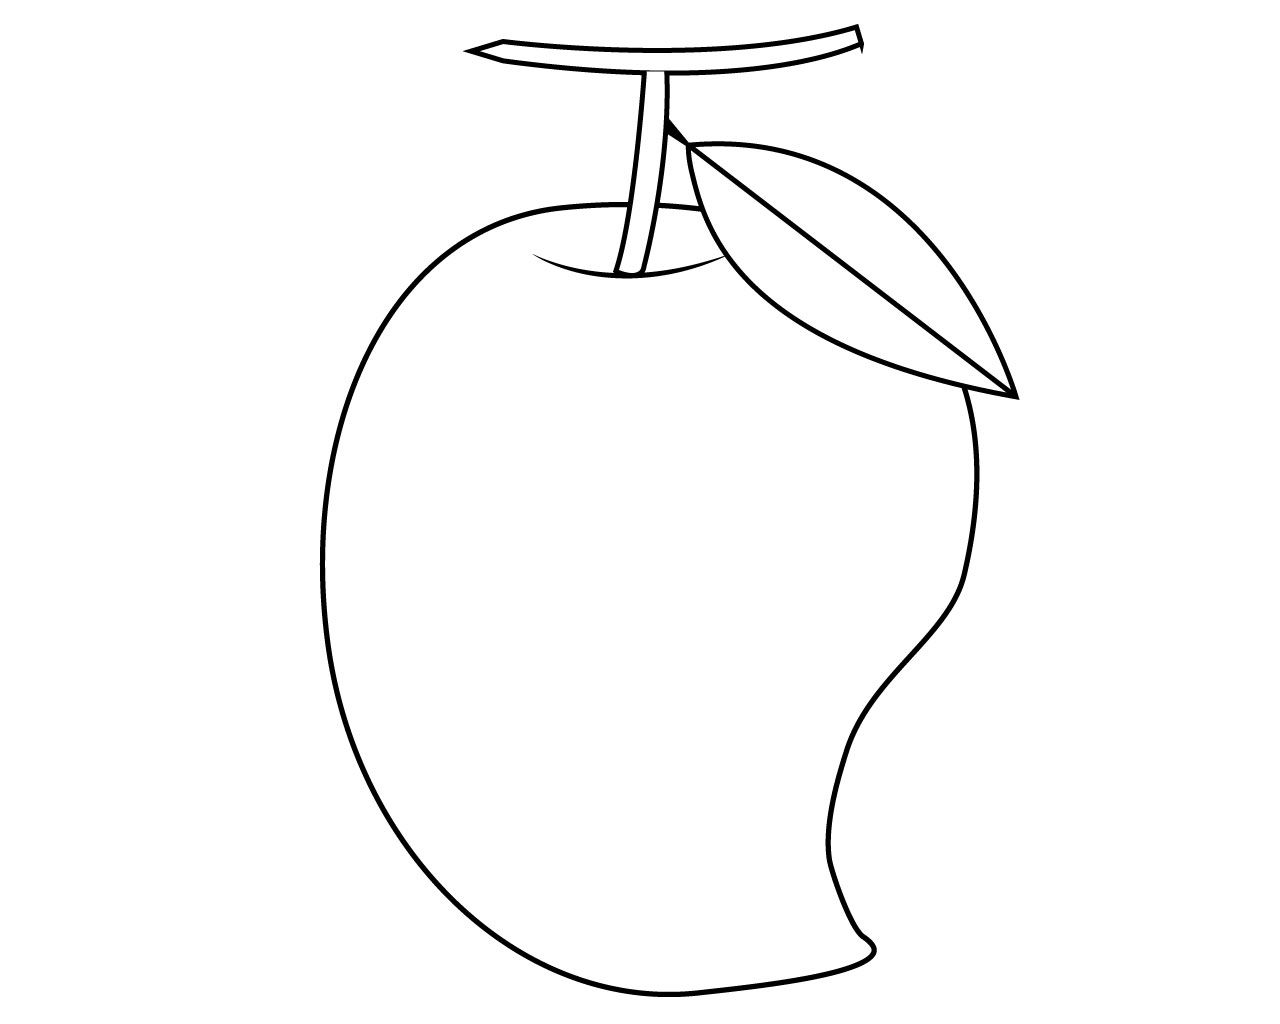 Free Printable Fruits Coloring Pages For Kids Online With Images